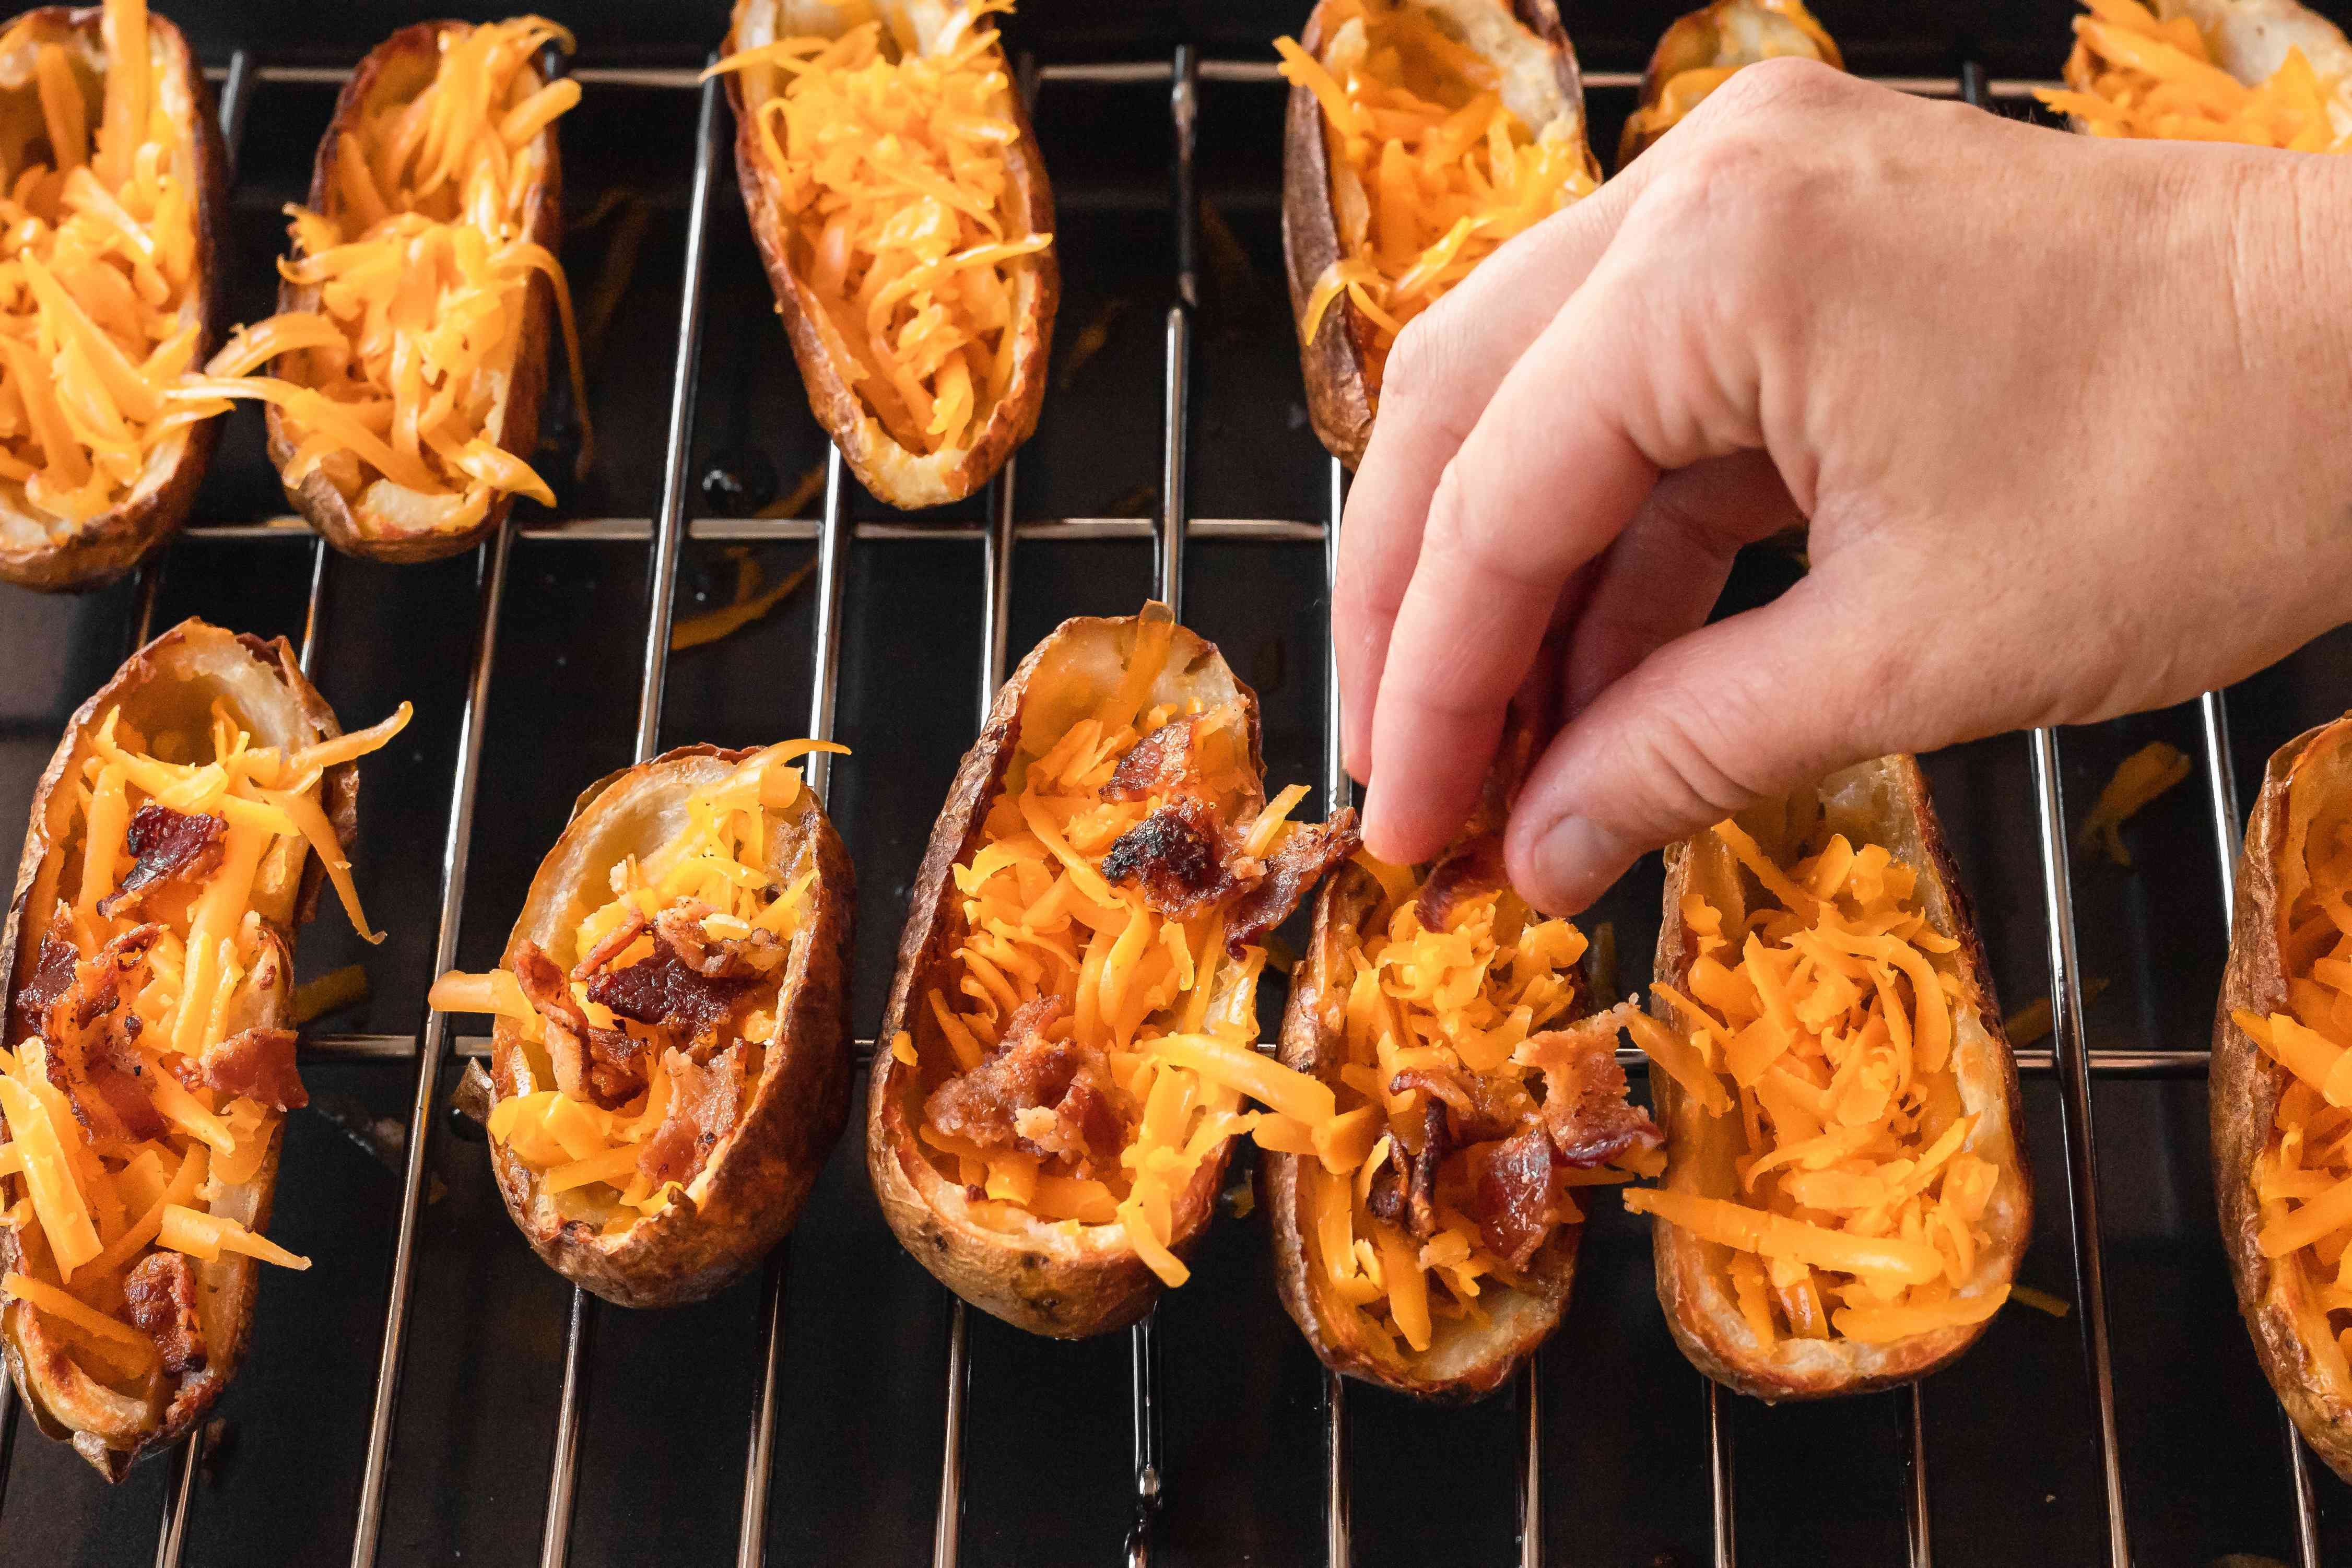 Topping potato skins with cheese and bacon.